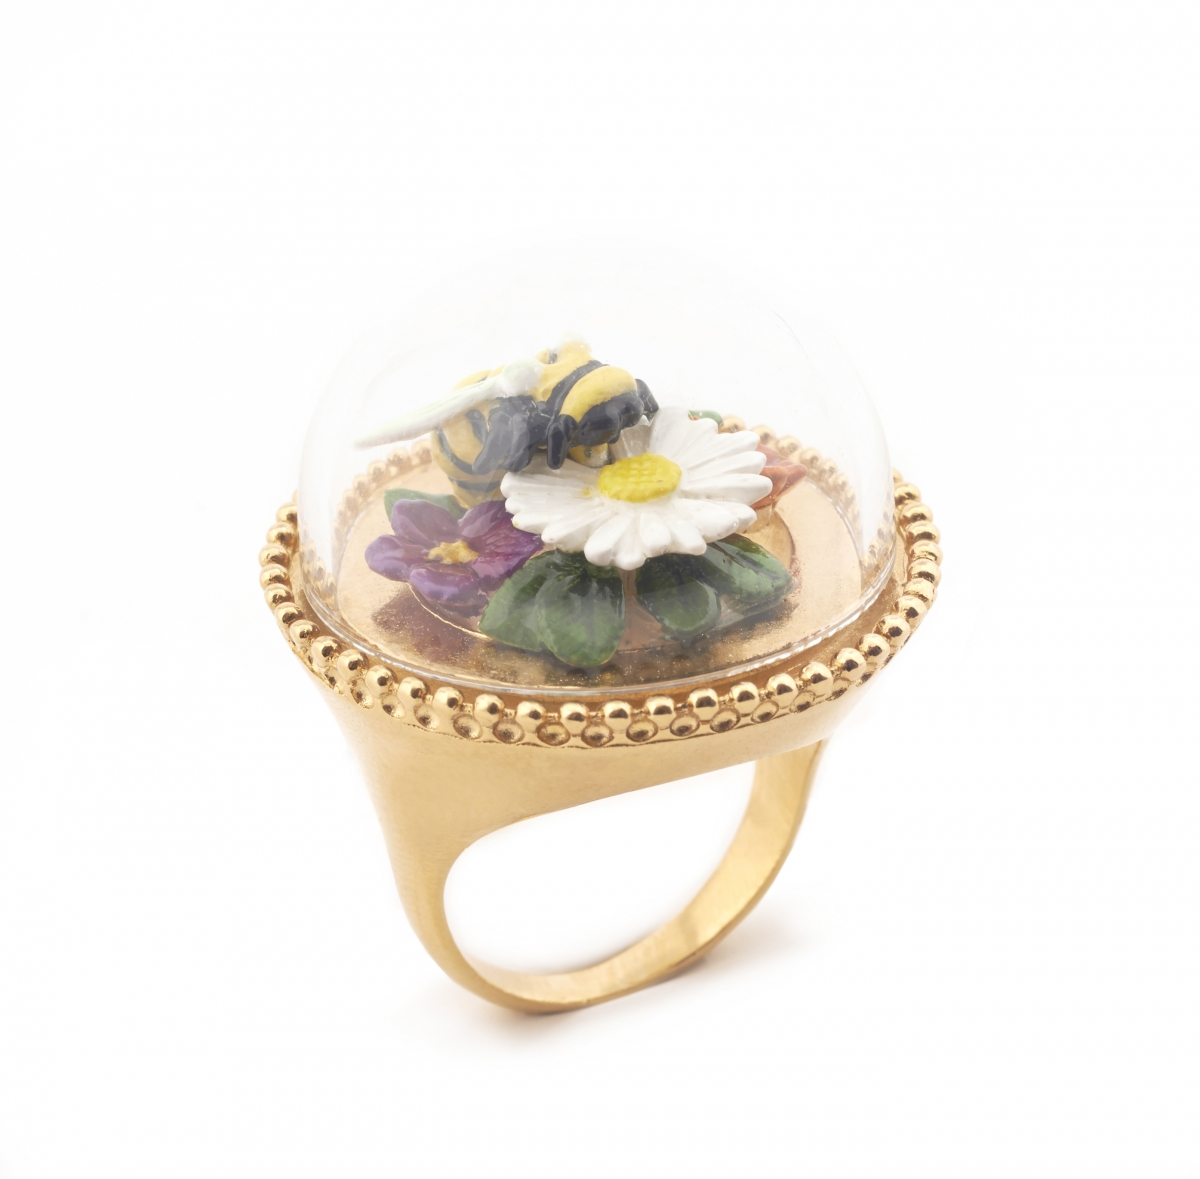 Curios Bee & Floral Ring - Medium Size Only